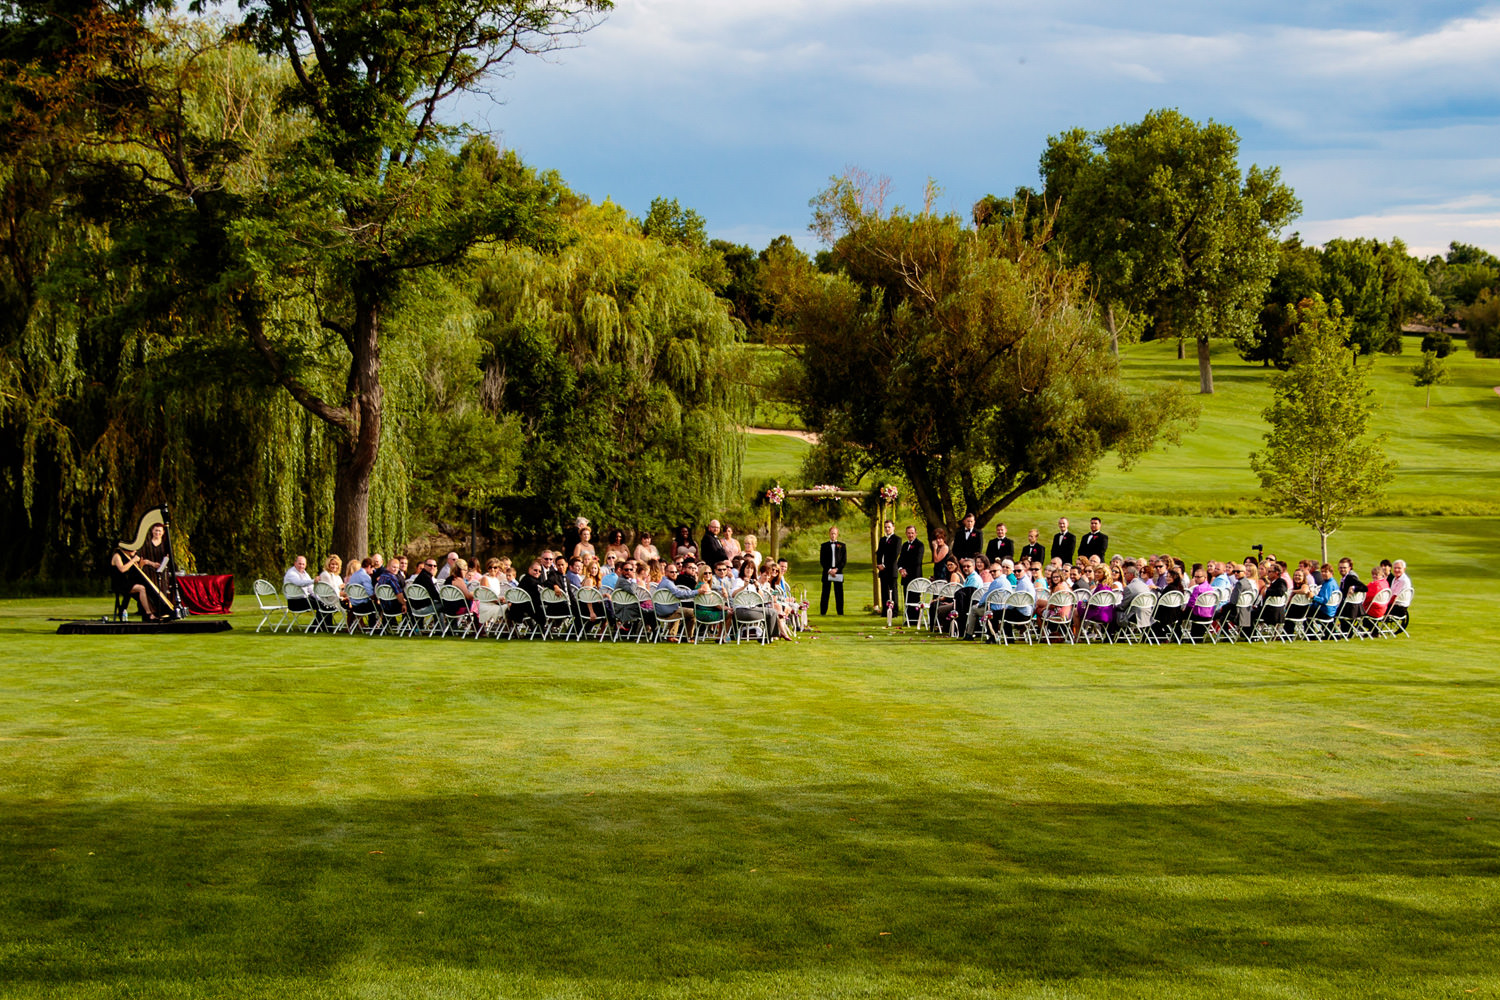 lakewood-country-club-wedding-photographer-tomKphoto-012.jpg